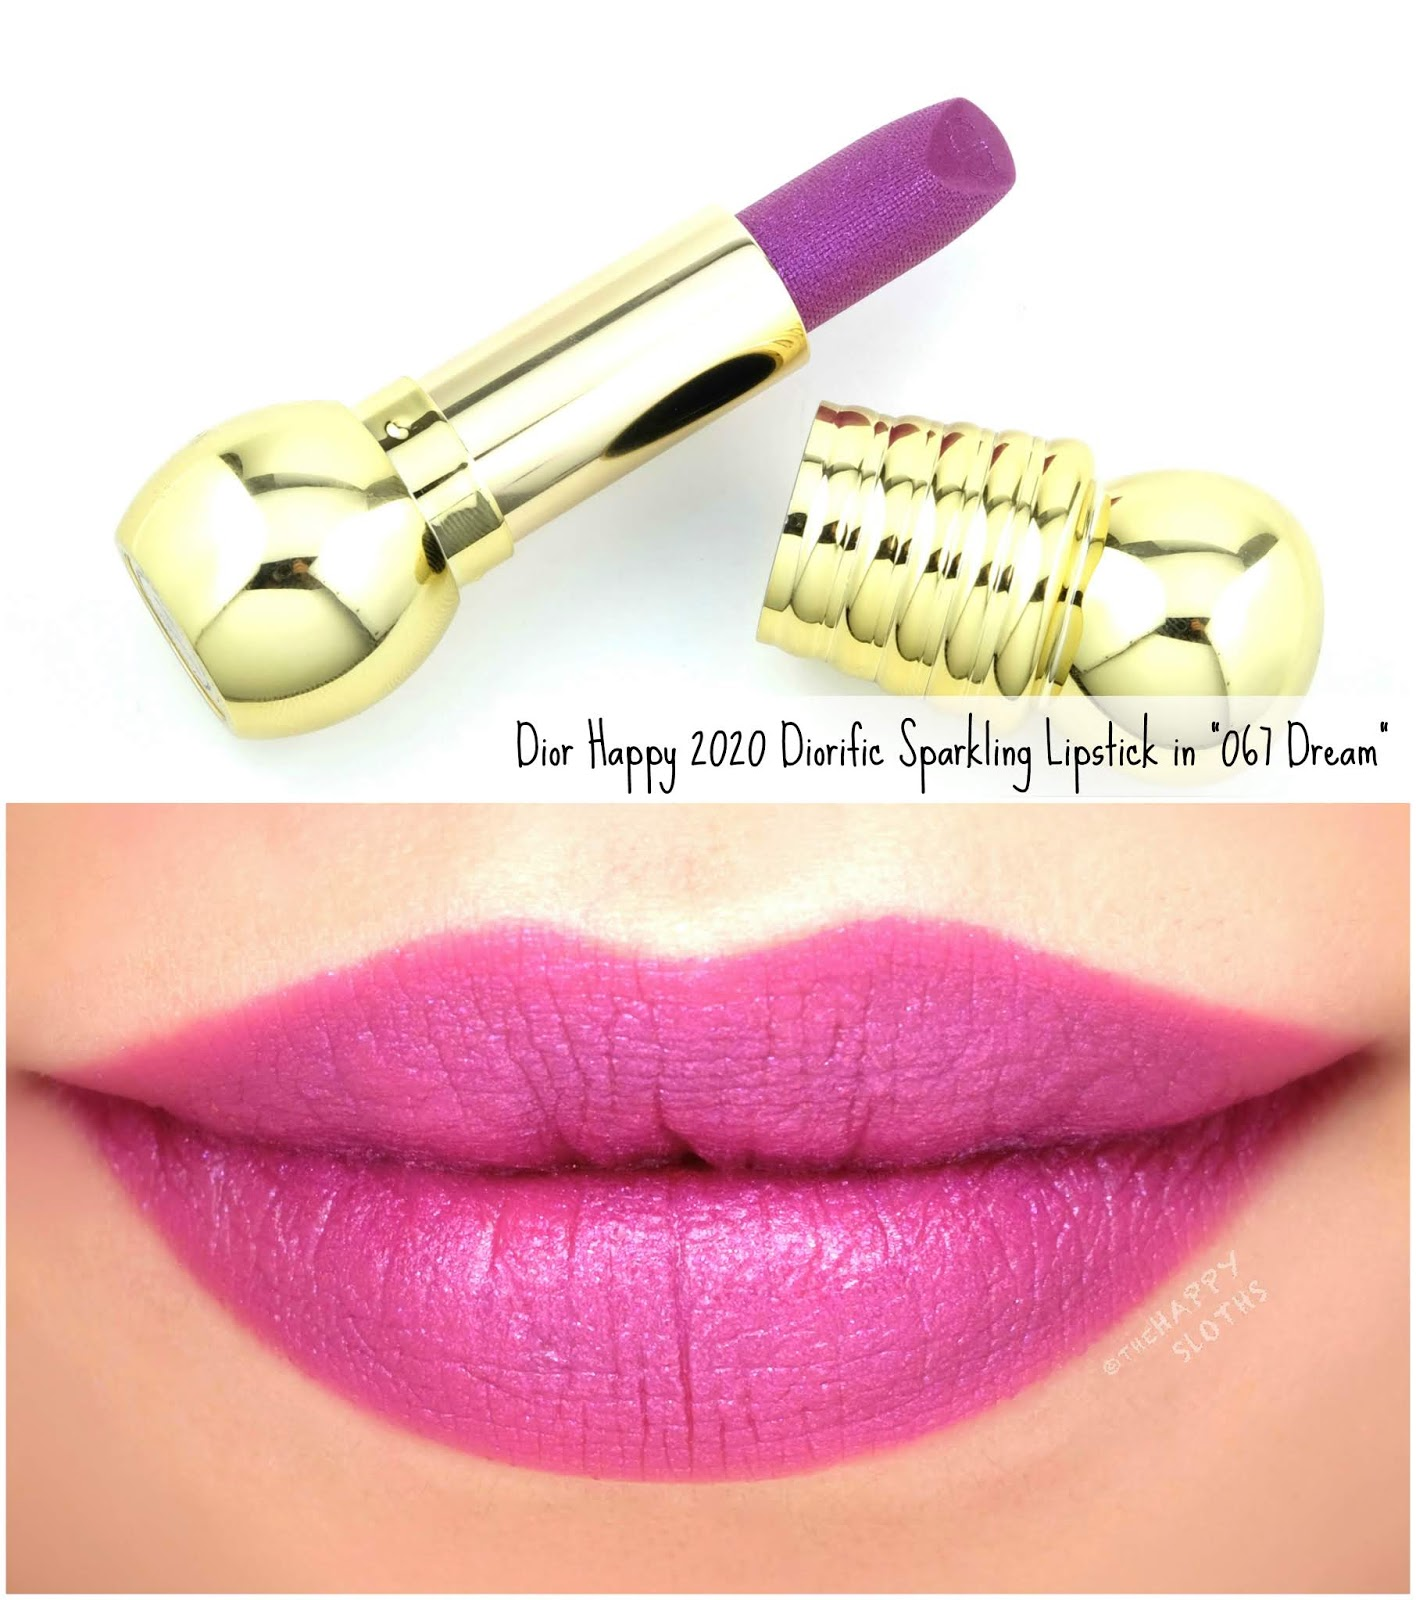 "Dior | Happy 2020 Diorific Sparkling Lipstick in ""067 Dream"": Review and Swatches"